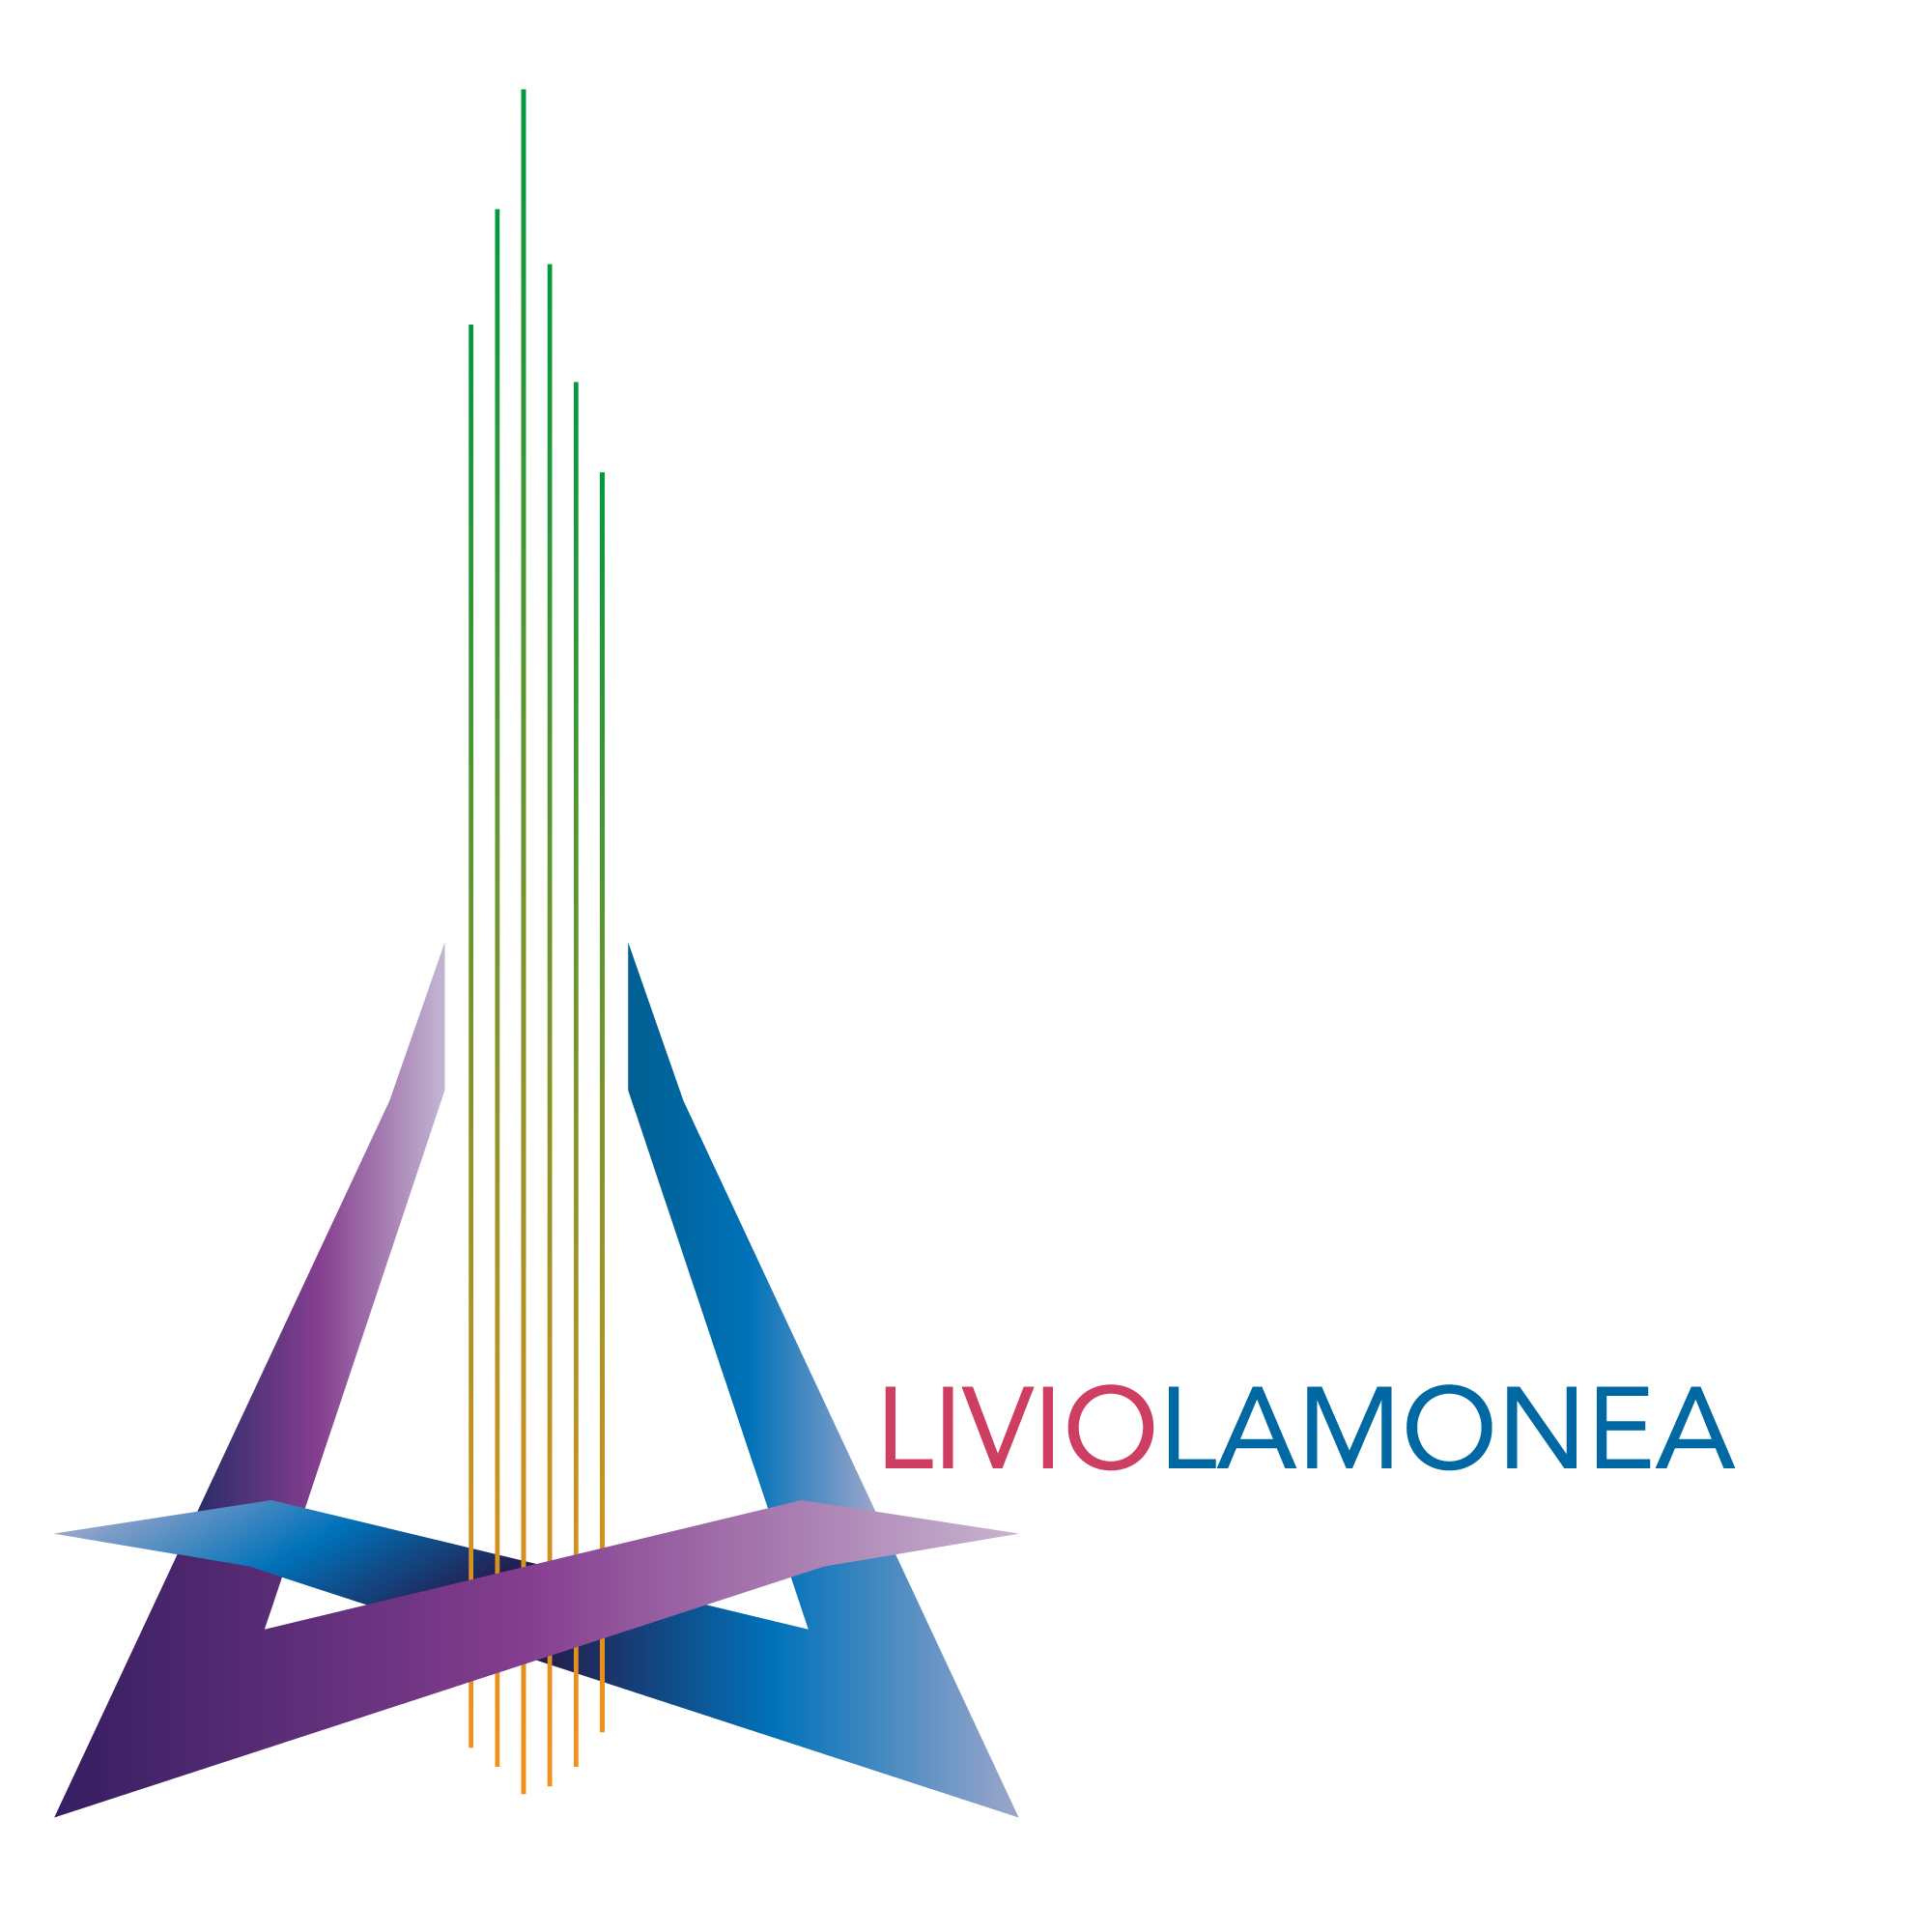 Liviolamonea.it